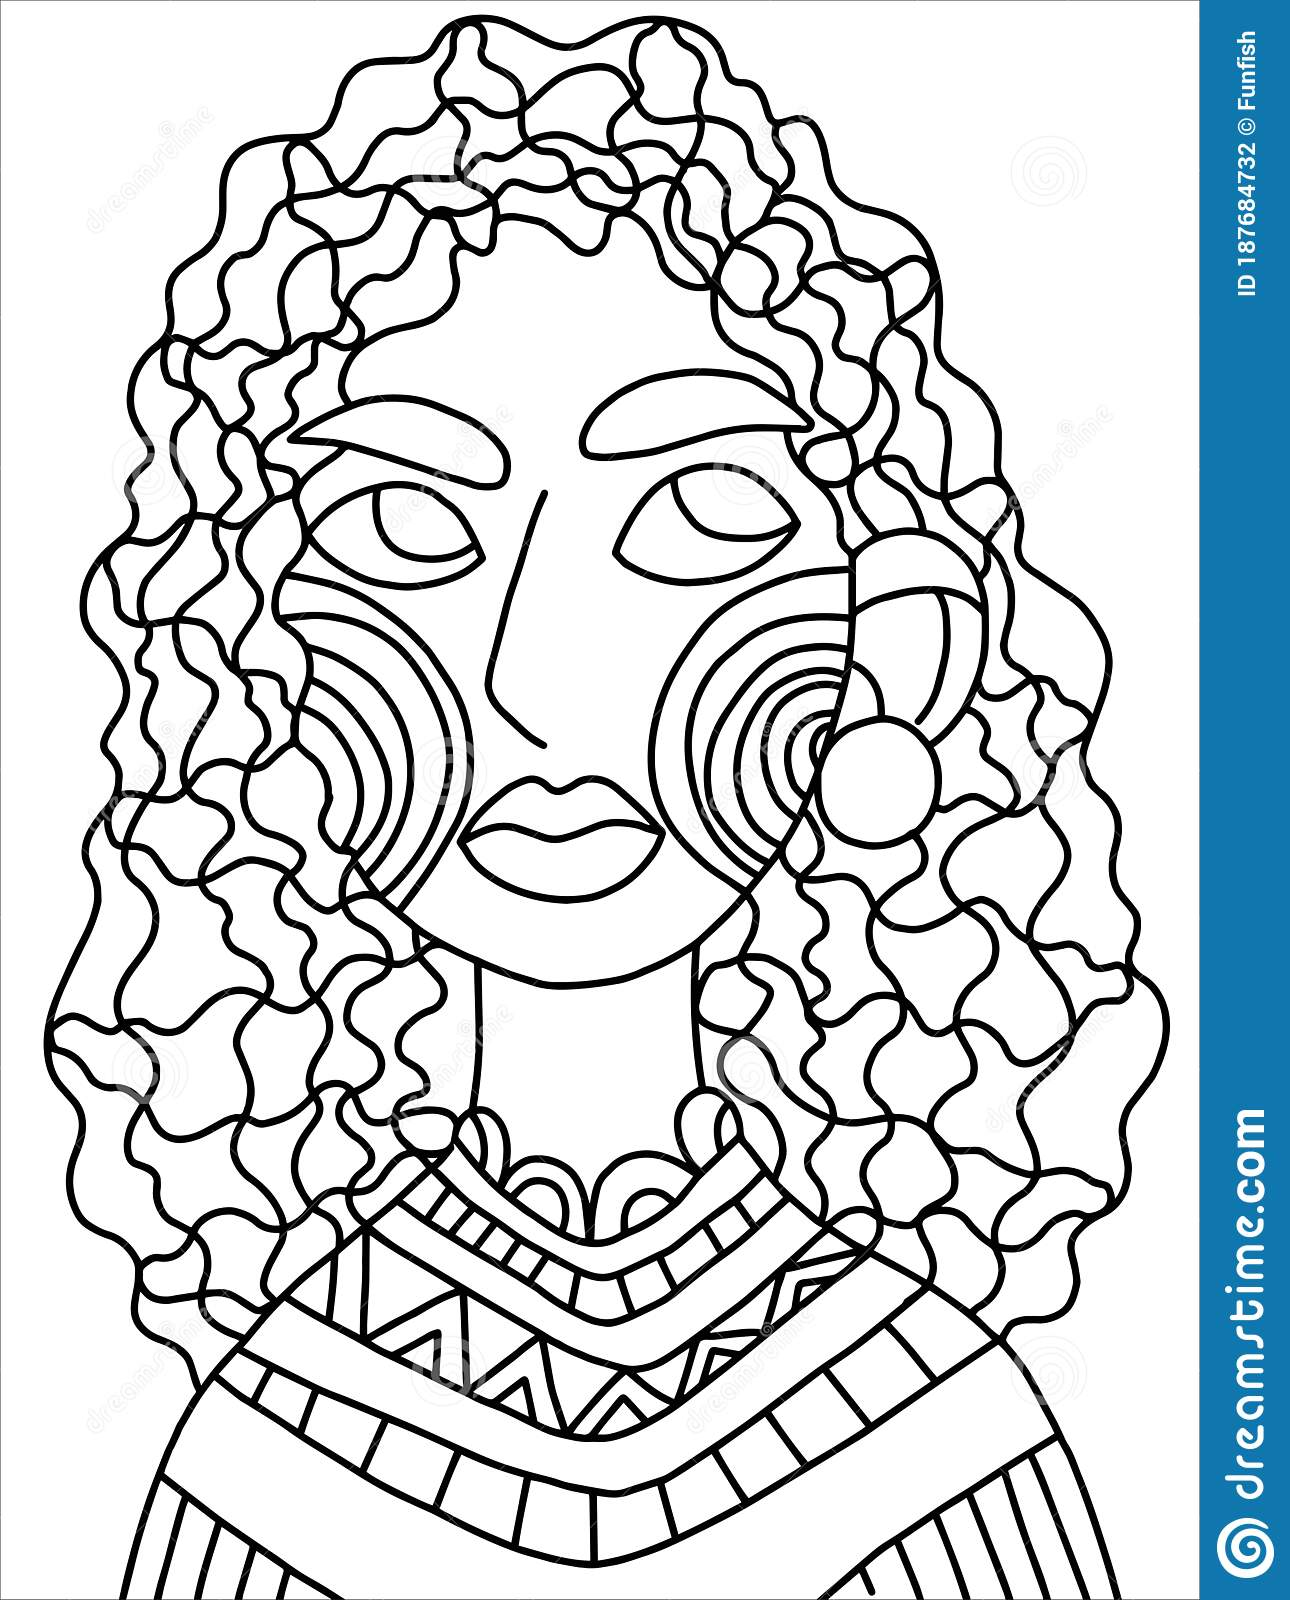 Serious Female Portrait Coloring Page Stock Vector Illustration Stock Vector Illustration Of Contour Coloring 187684732